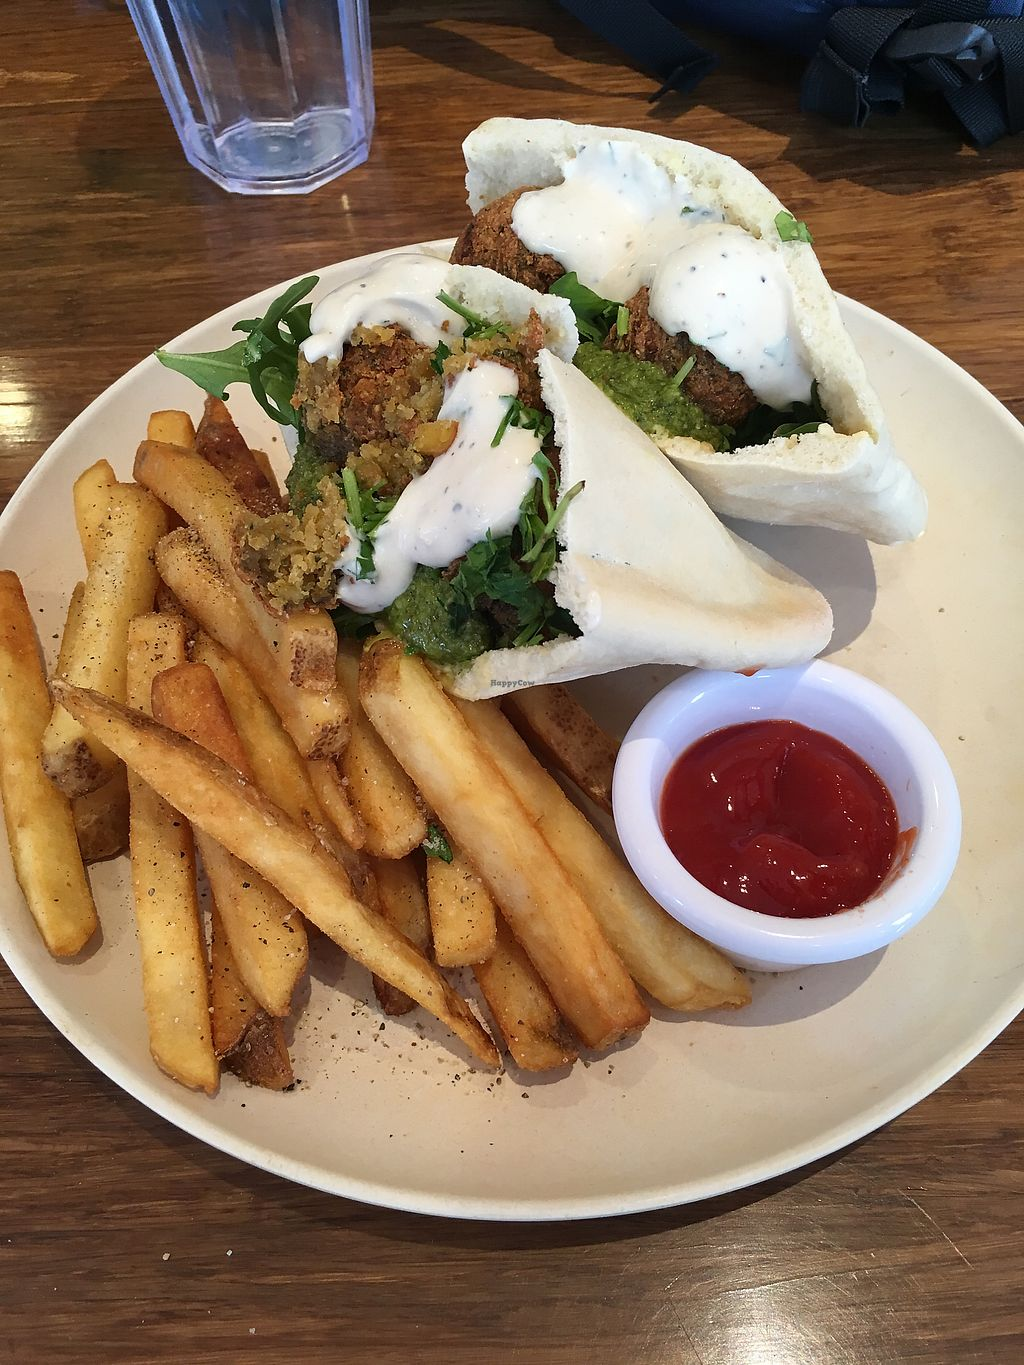 """Photo of Veggie Grill - Downtown Portland  by <a href=""""/members/profile/DianeH"""">DianeH</a> <br/>Fala-Full Sandwich & fries  <br/> February 5, 2018  - <a href='/contact/abuse/image/32544/355408'>Report</a>"""